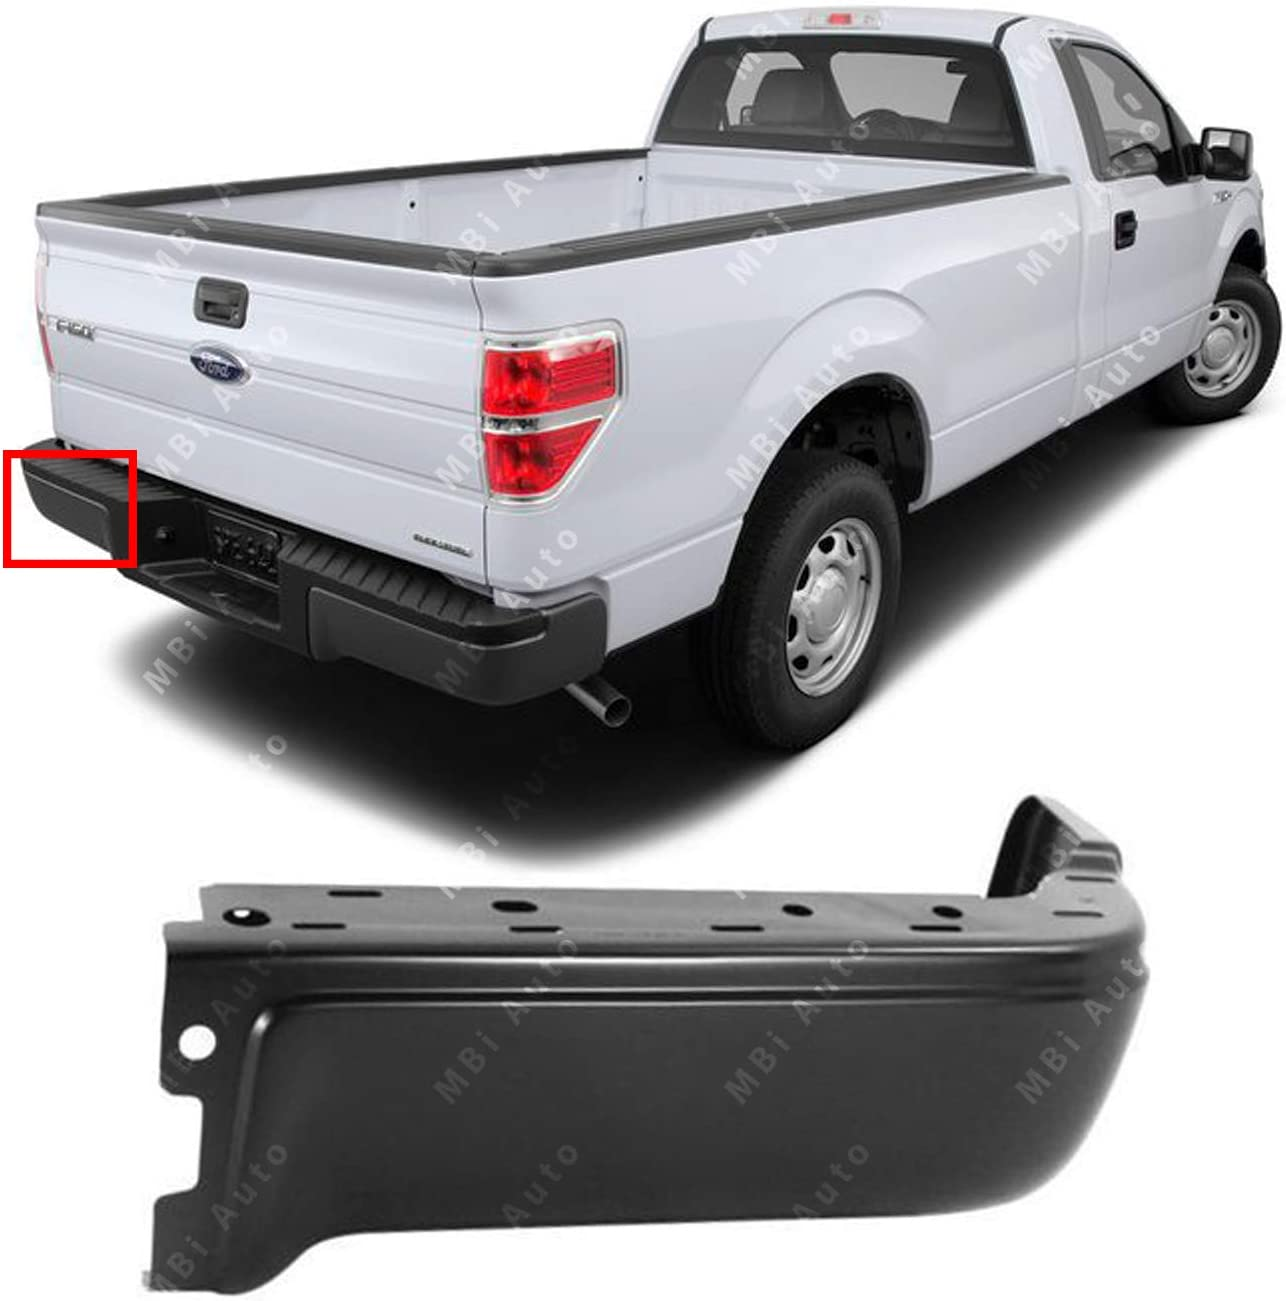 FO1102375 Primered Steel Rear Right RH Bumper Face Bar for 2009-2014 Ford F-150 Pickup 09-14 BUMPERS THAT DELIVER